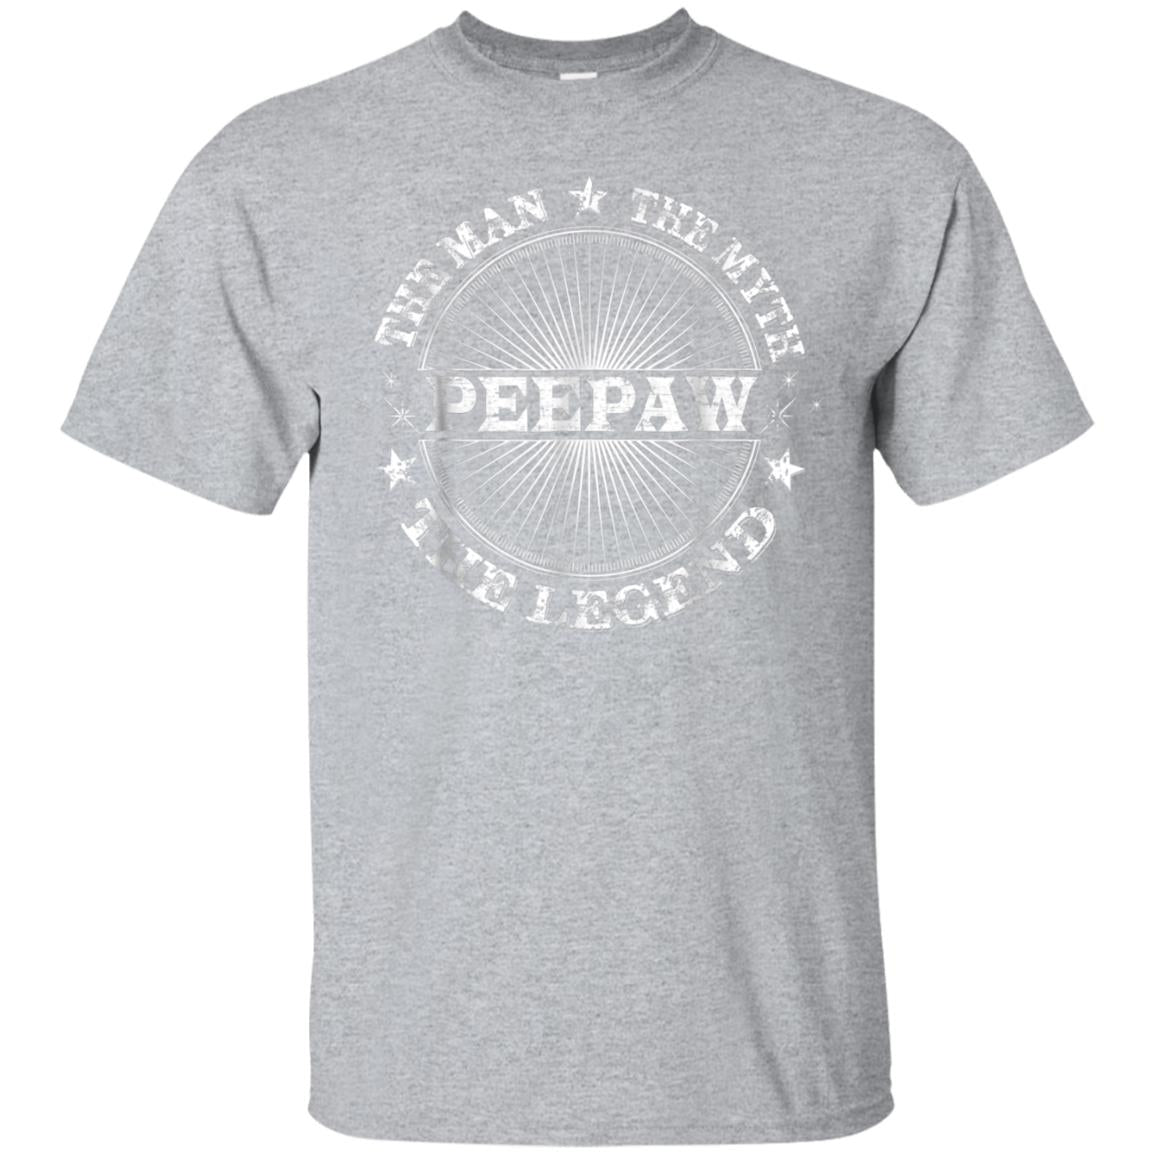 2018 The Man The Myth The Legend Tshirt For Your Peepaw 99promocode